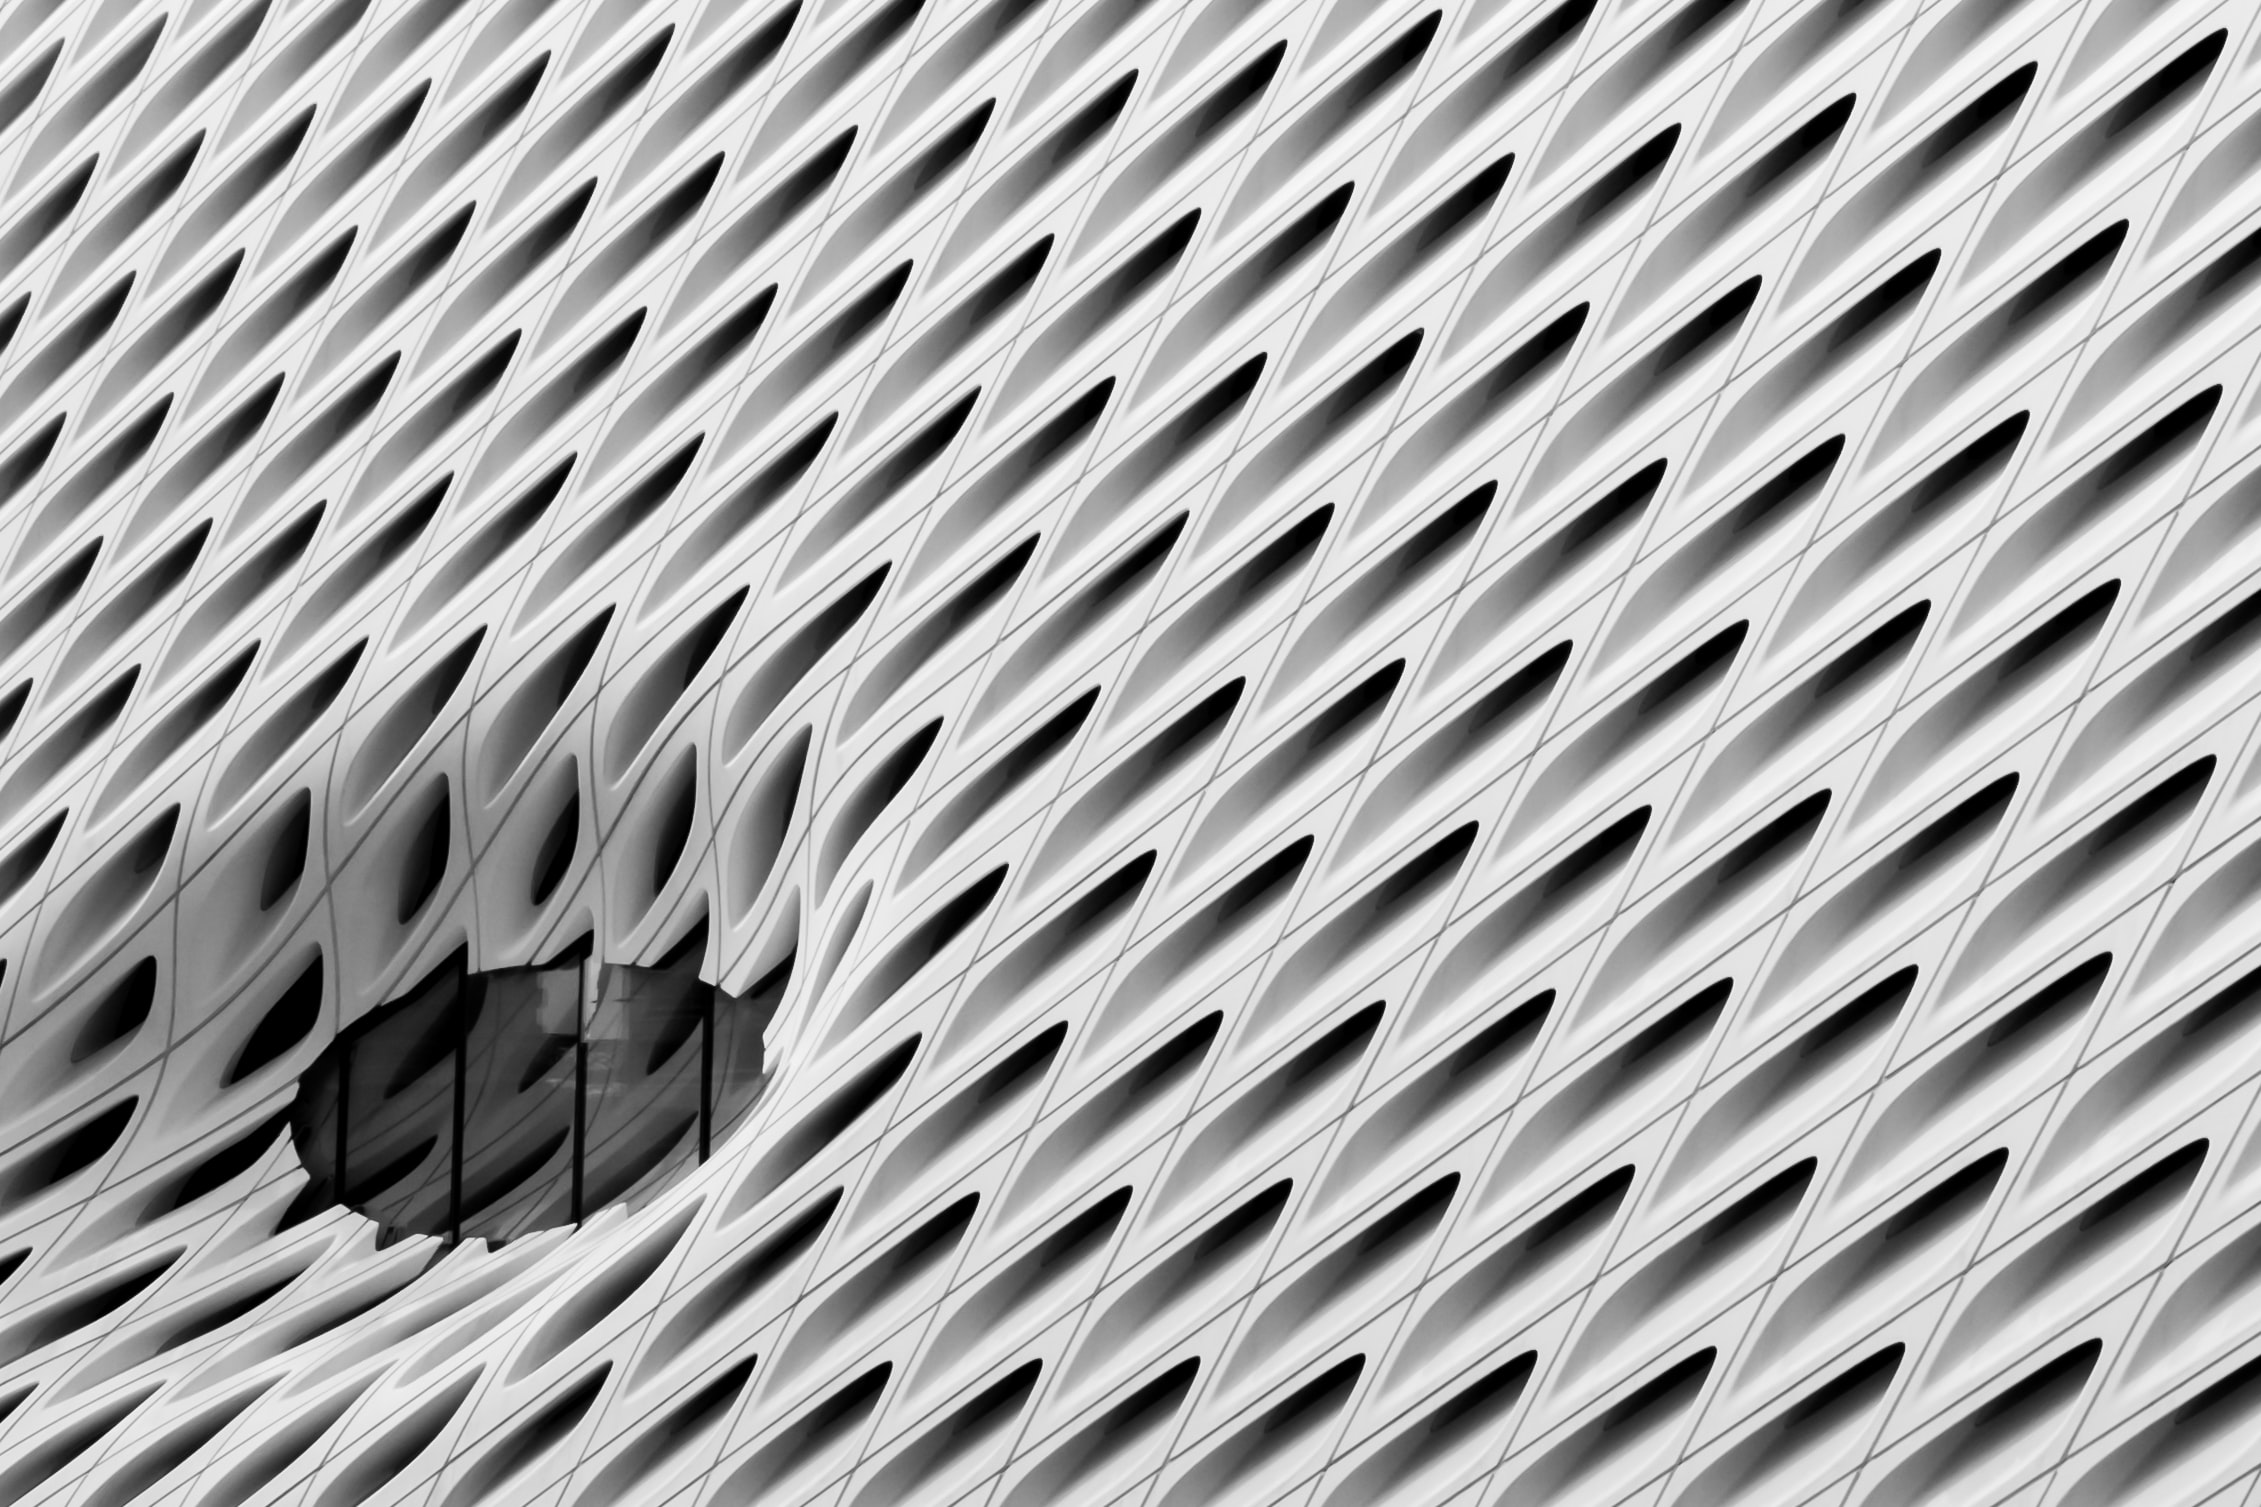 Black and white shot of The Broad museum building architecture in Los Angeles